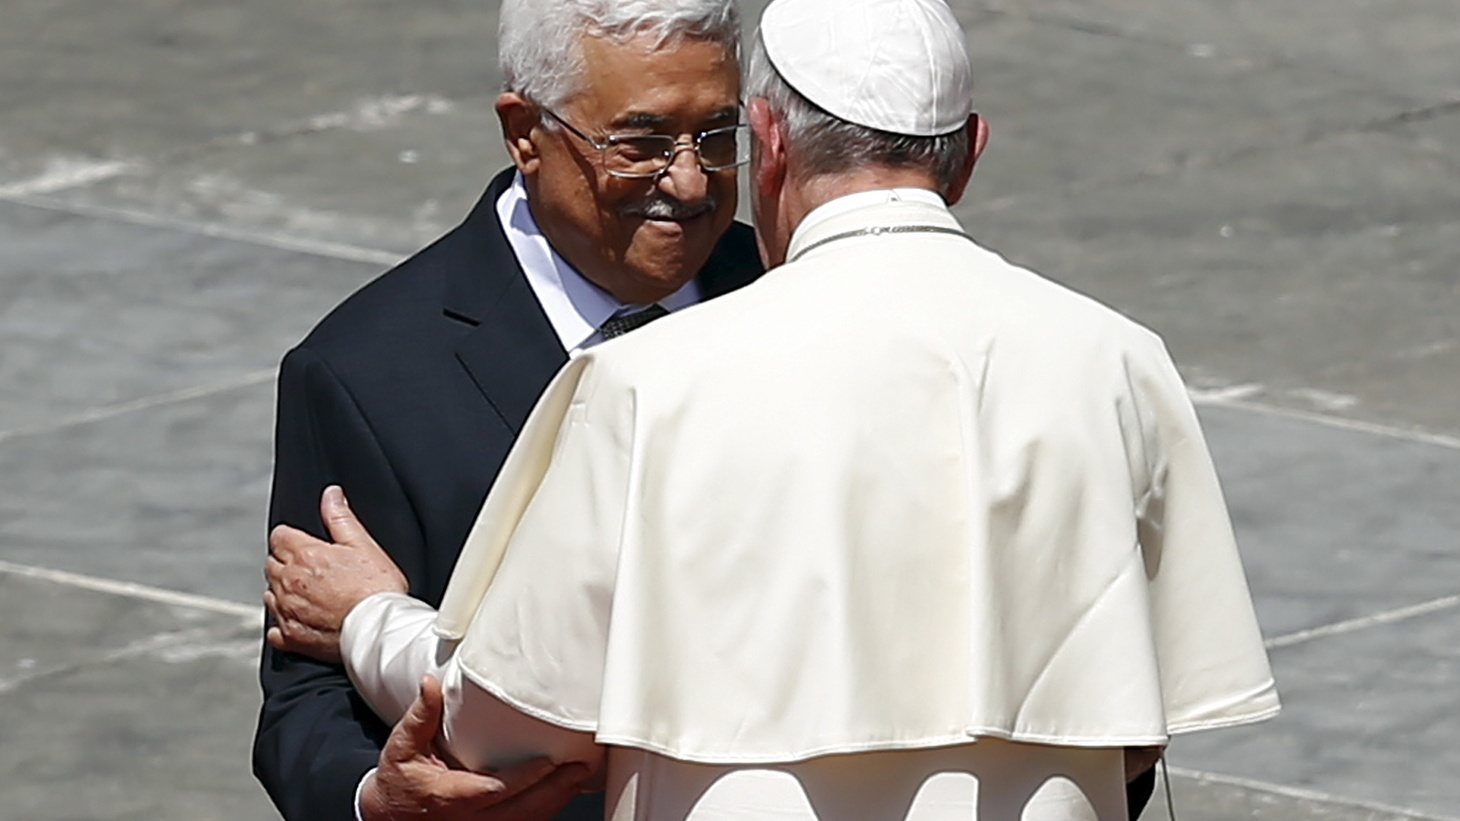 Under the leadership of Pope Francis, the Vatican has joined 135 countries in recognizing a Palestinian state. Will it be more than a boost for Palestinian morale? We hear Israeli reaction and the possible consequences in Europe and elsewhere in the world of diplomacy.